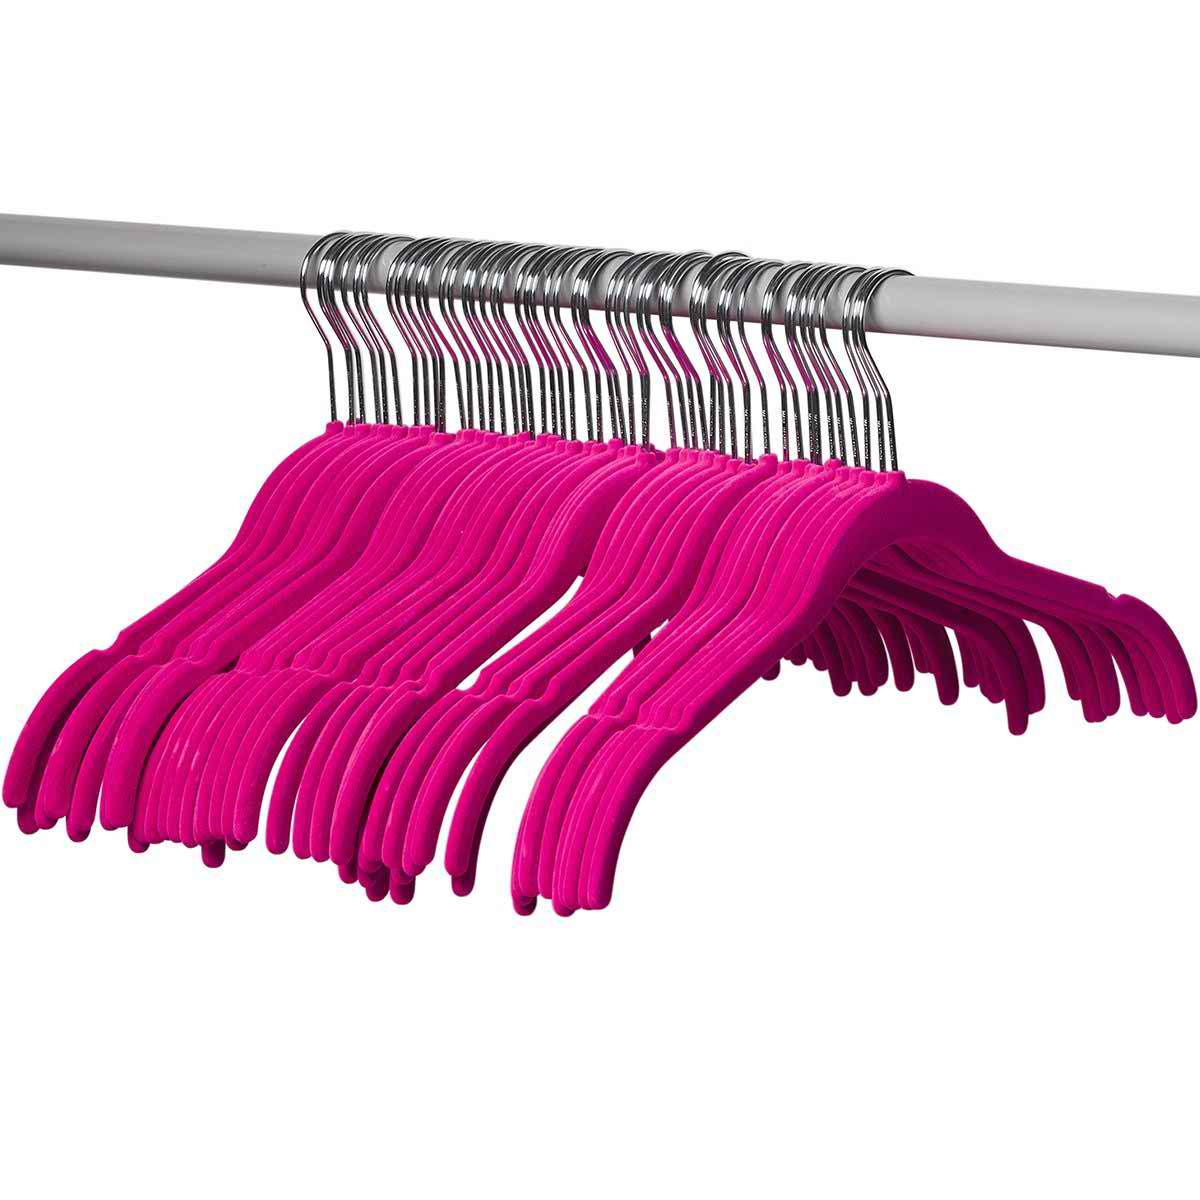 50 Pack Shirt and dress Clothes Hangers PINK Velvet Hangers Ultra Thin No Slip